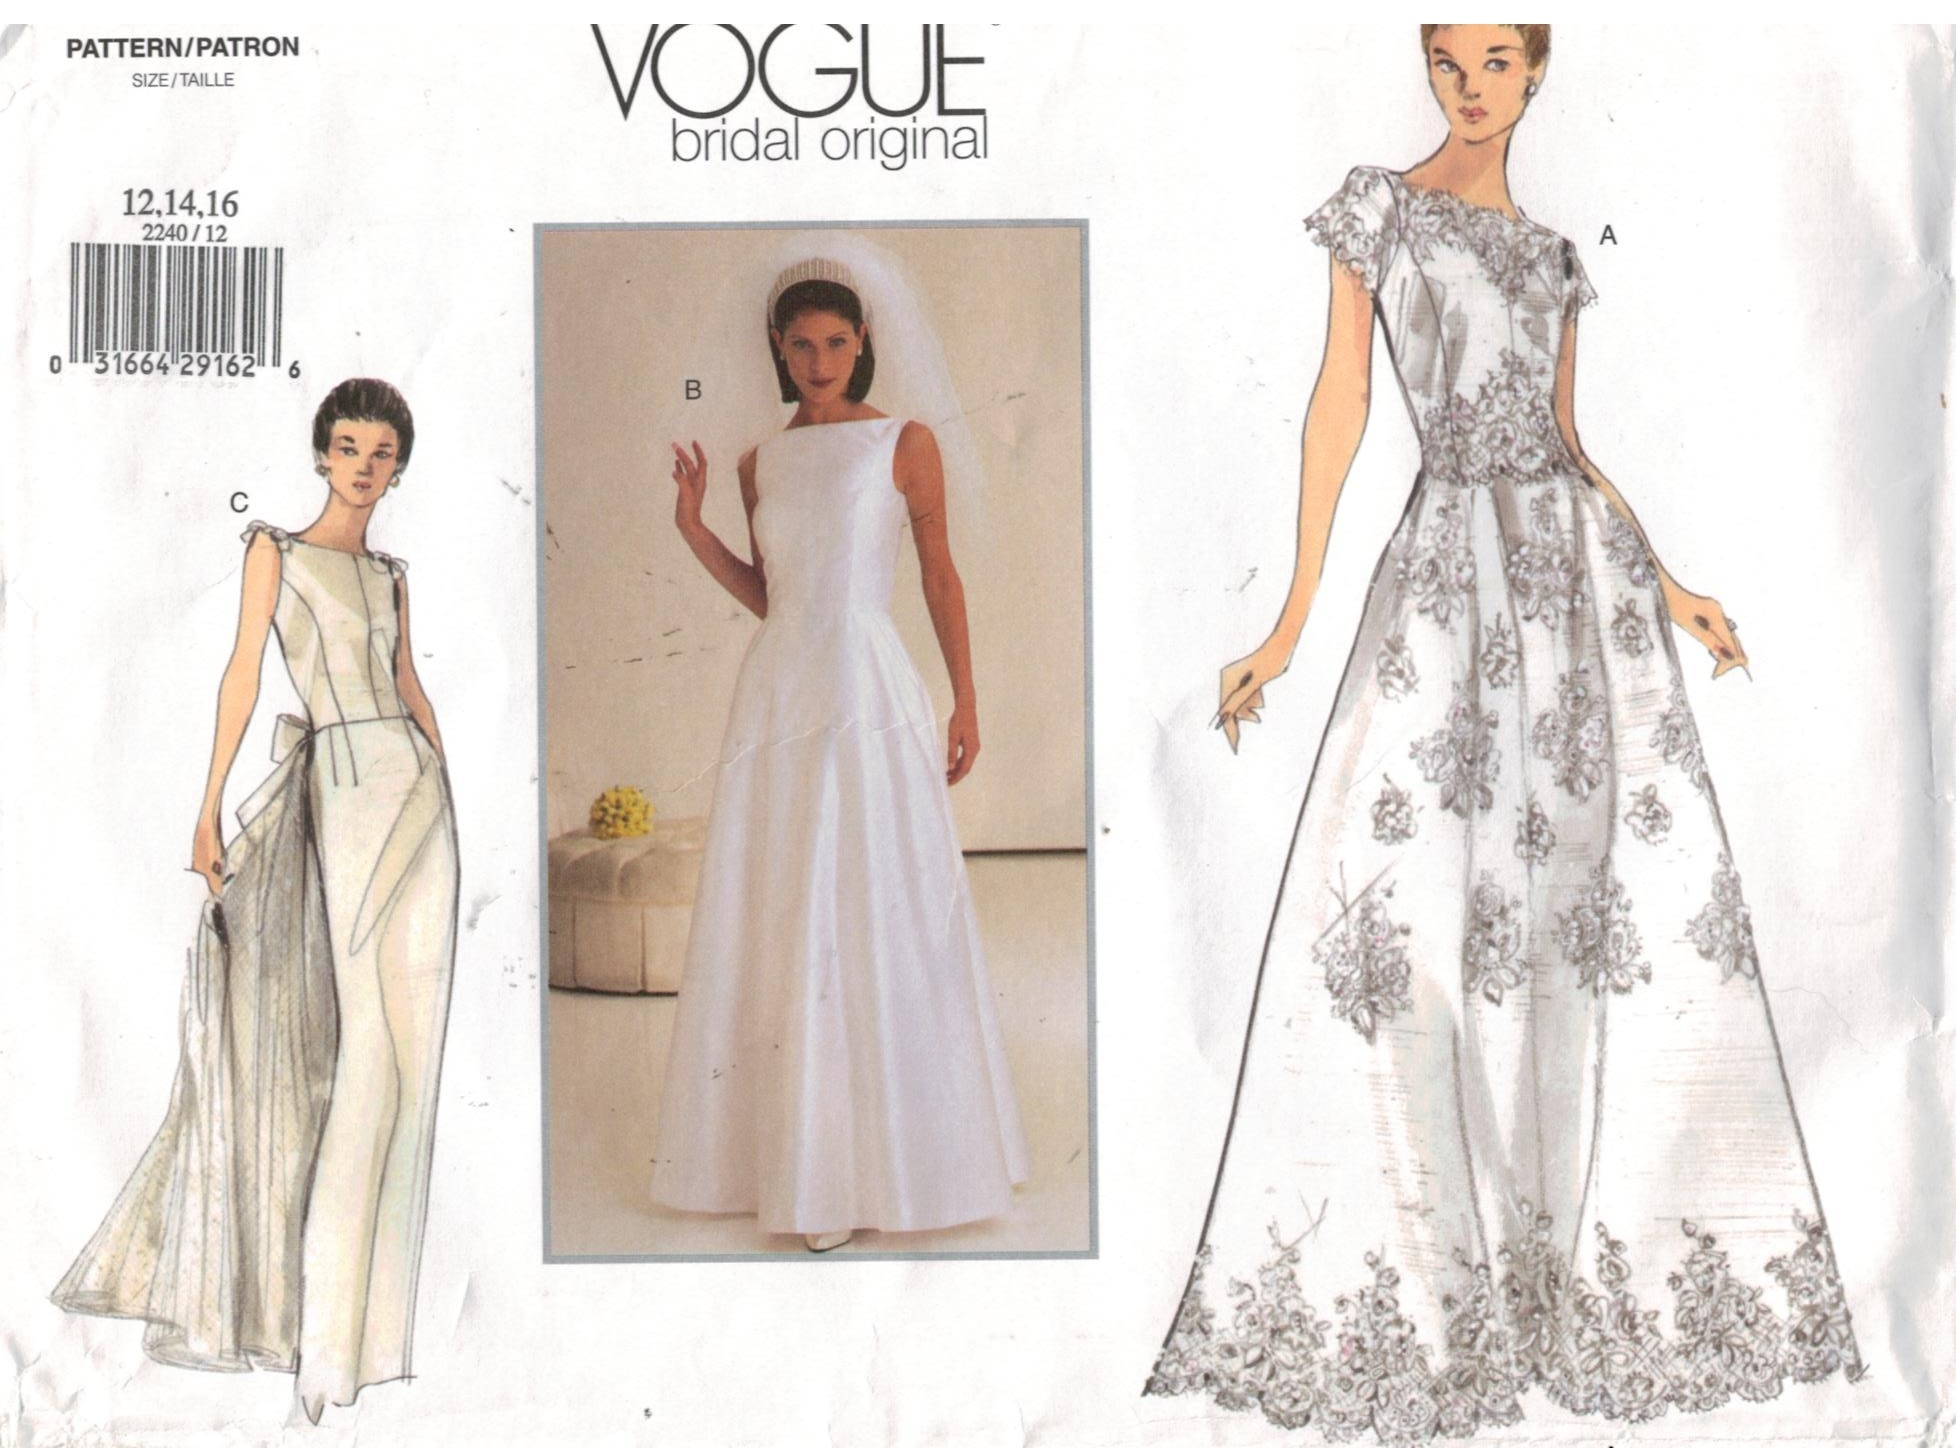 Vogue Pattern 2240 Bridal Wedding Gown Sizes 12 14 16